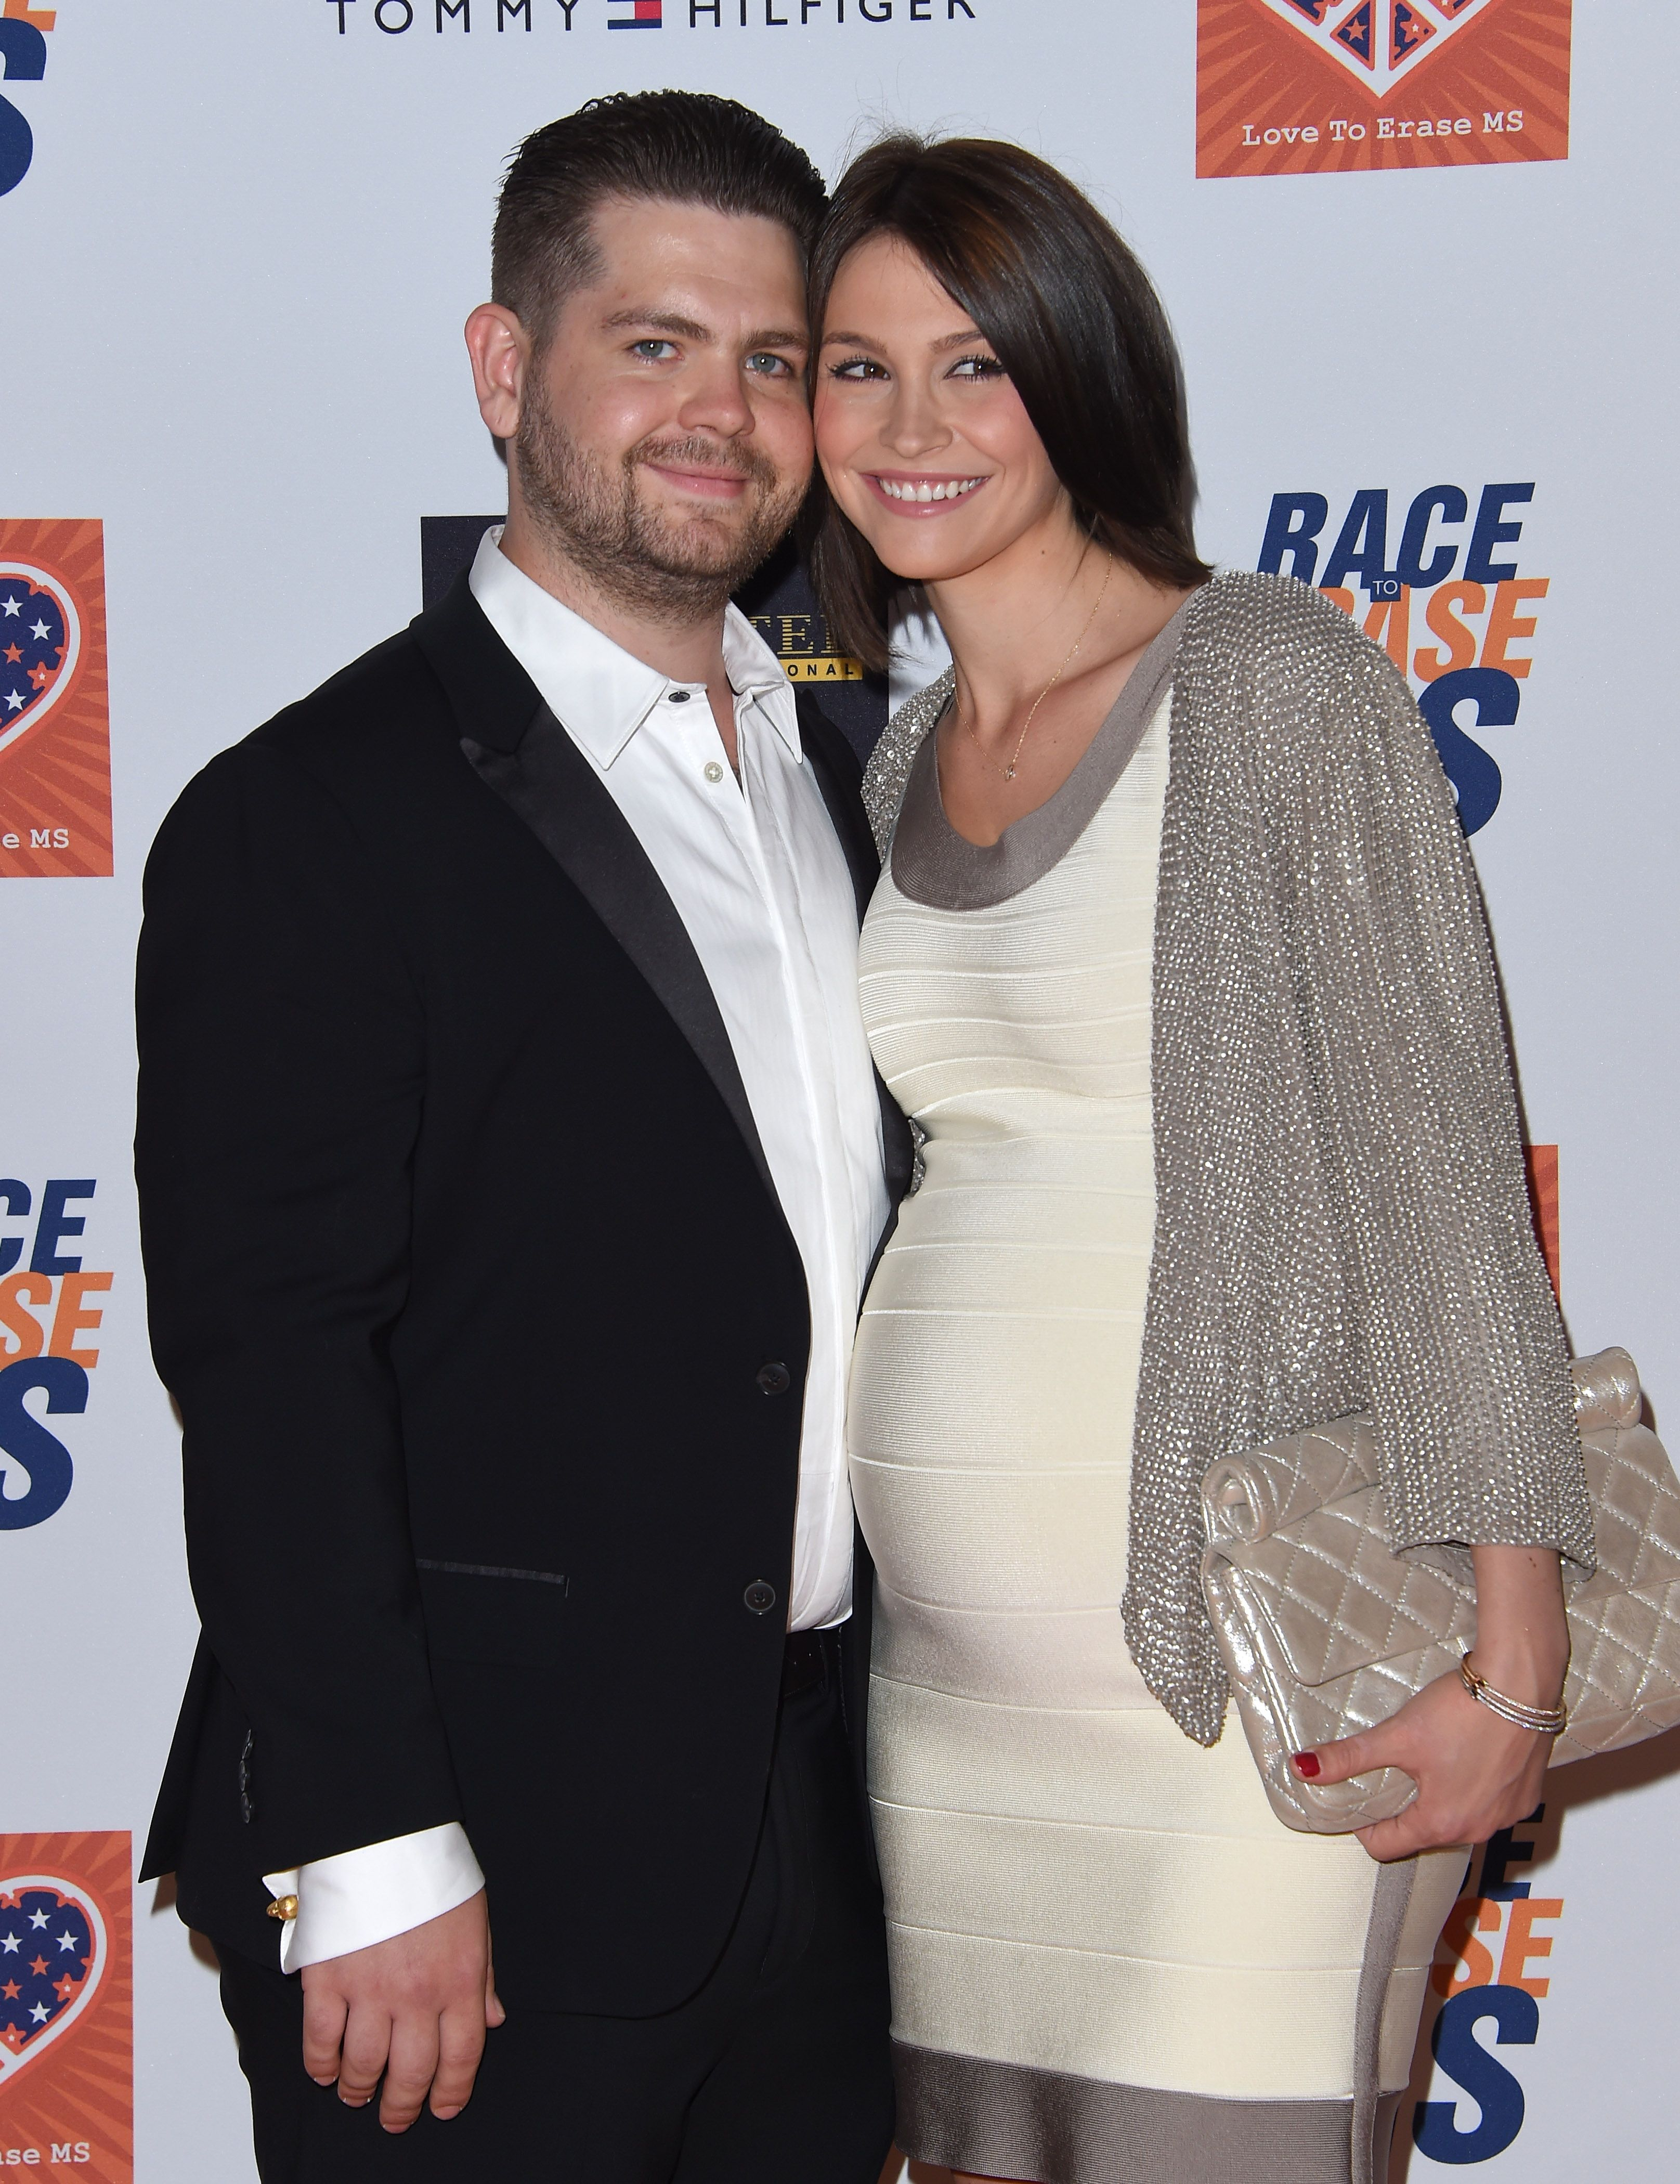 Jack Osbourne and Lisa Stelly at the 22nd Annual Race To Erase MS in 2015 in Century City, California | Source: Getty Images